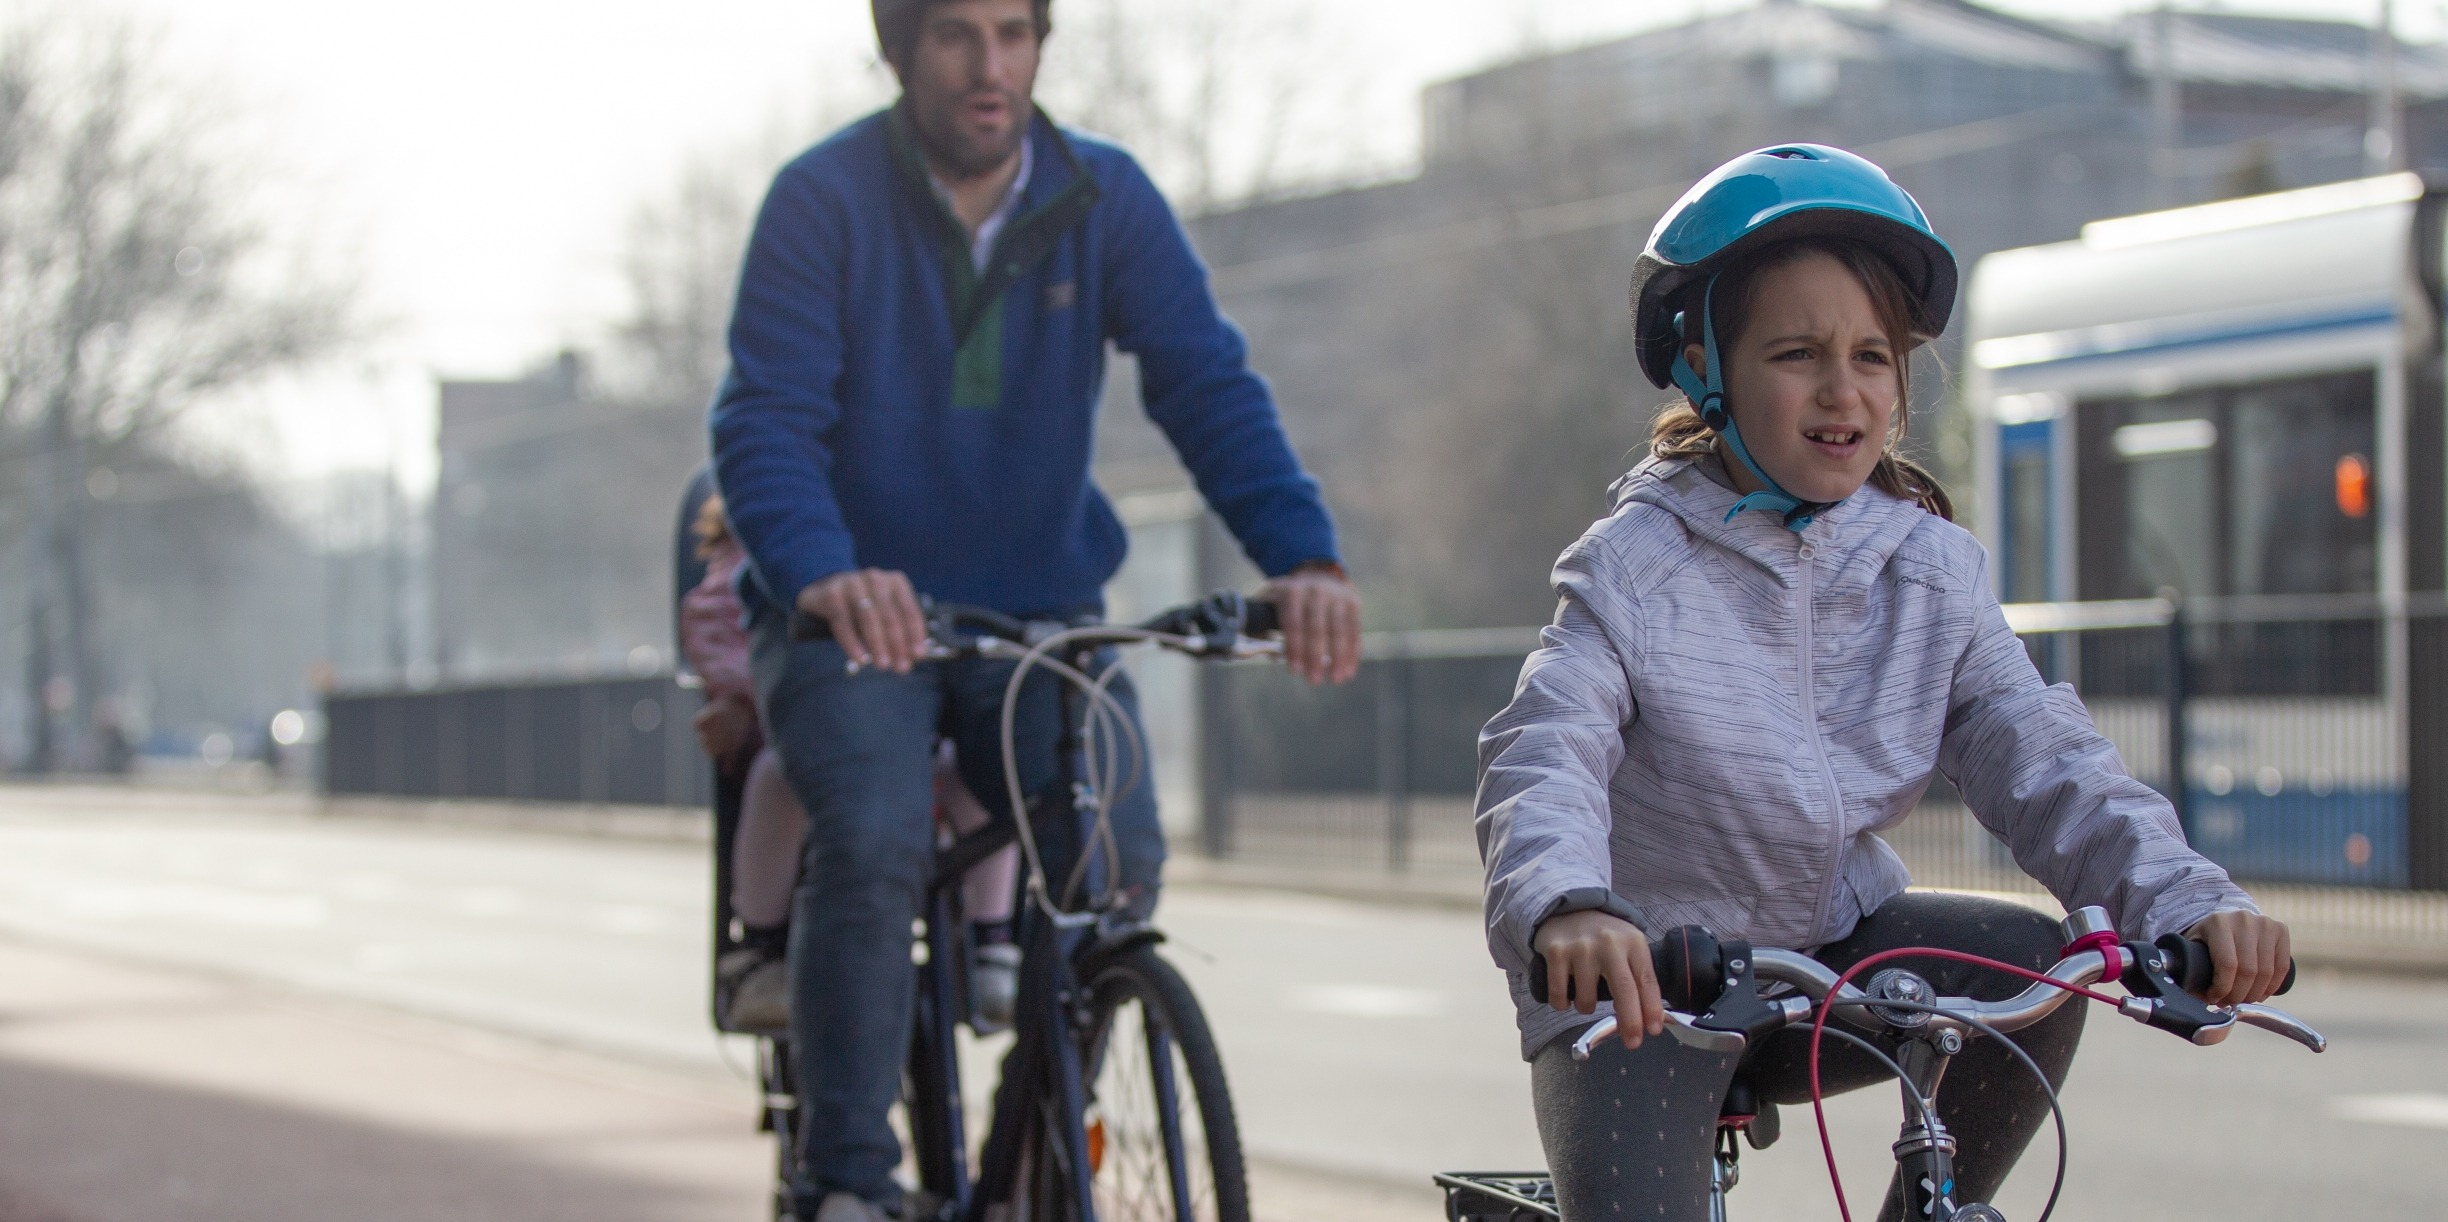 What Kit Do We Need For Beginner Family Leisure Cycling?